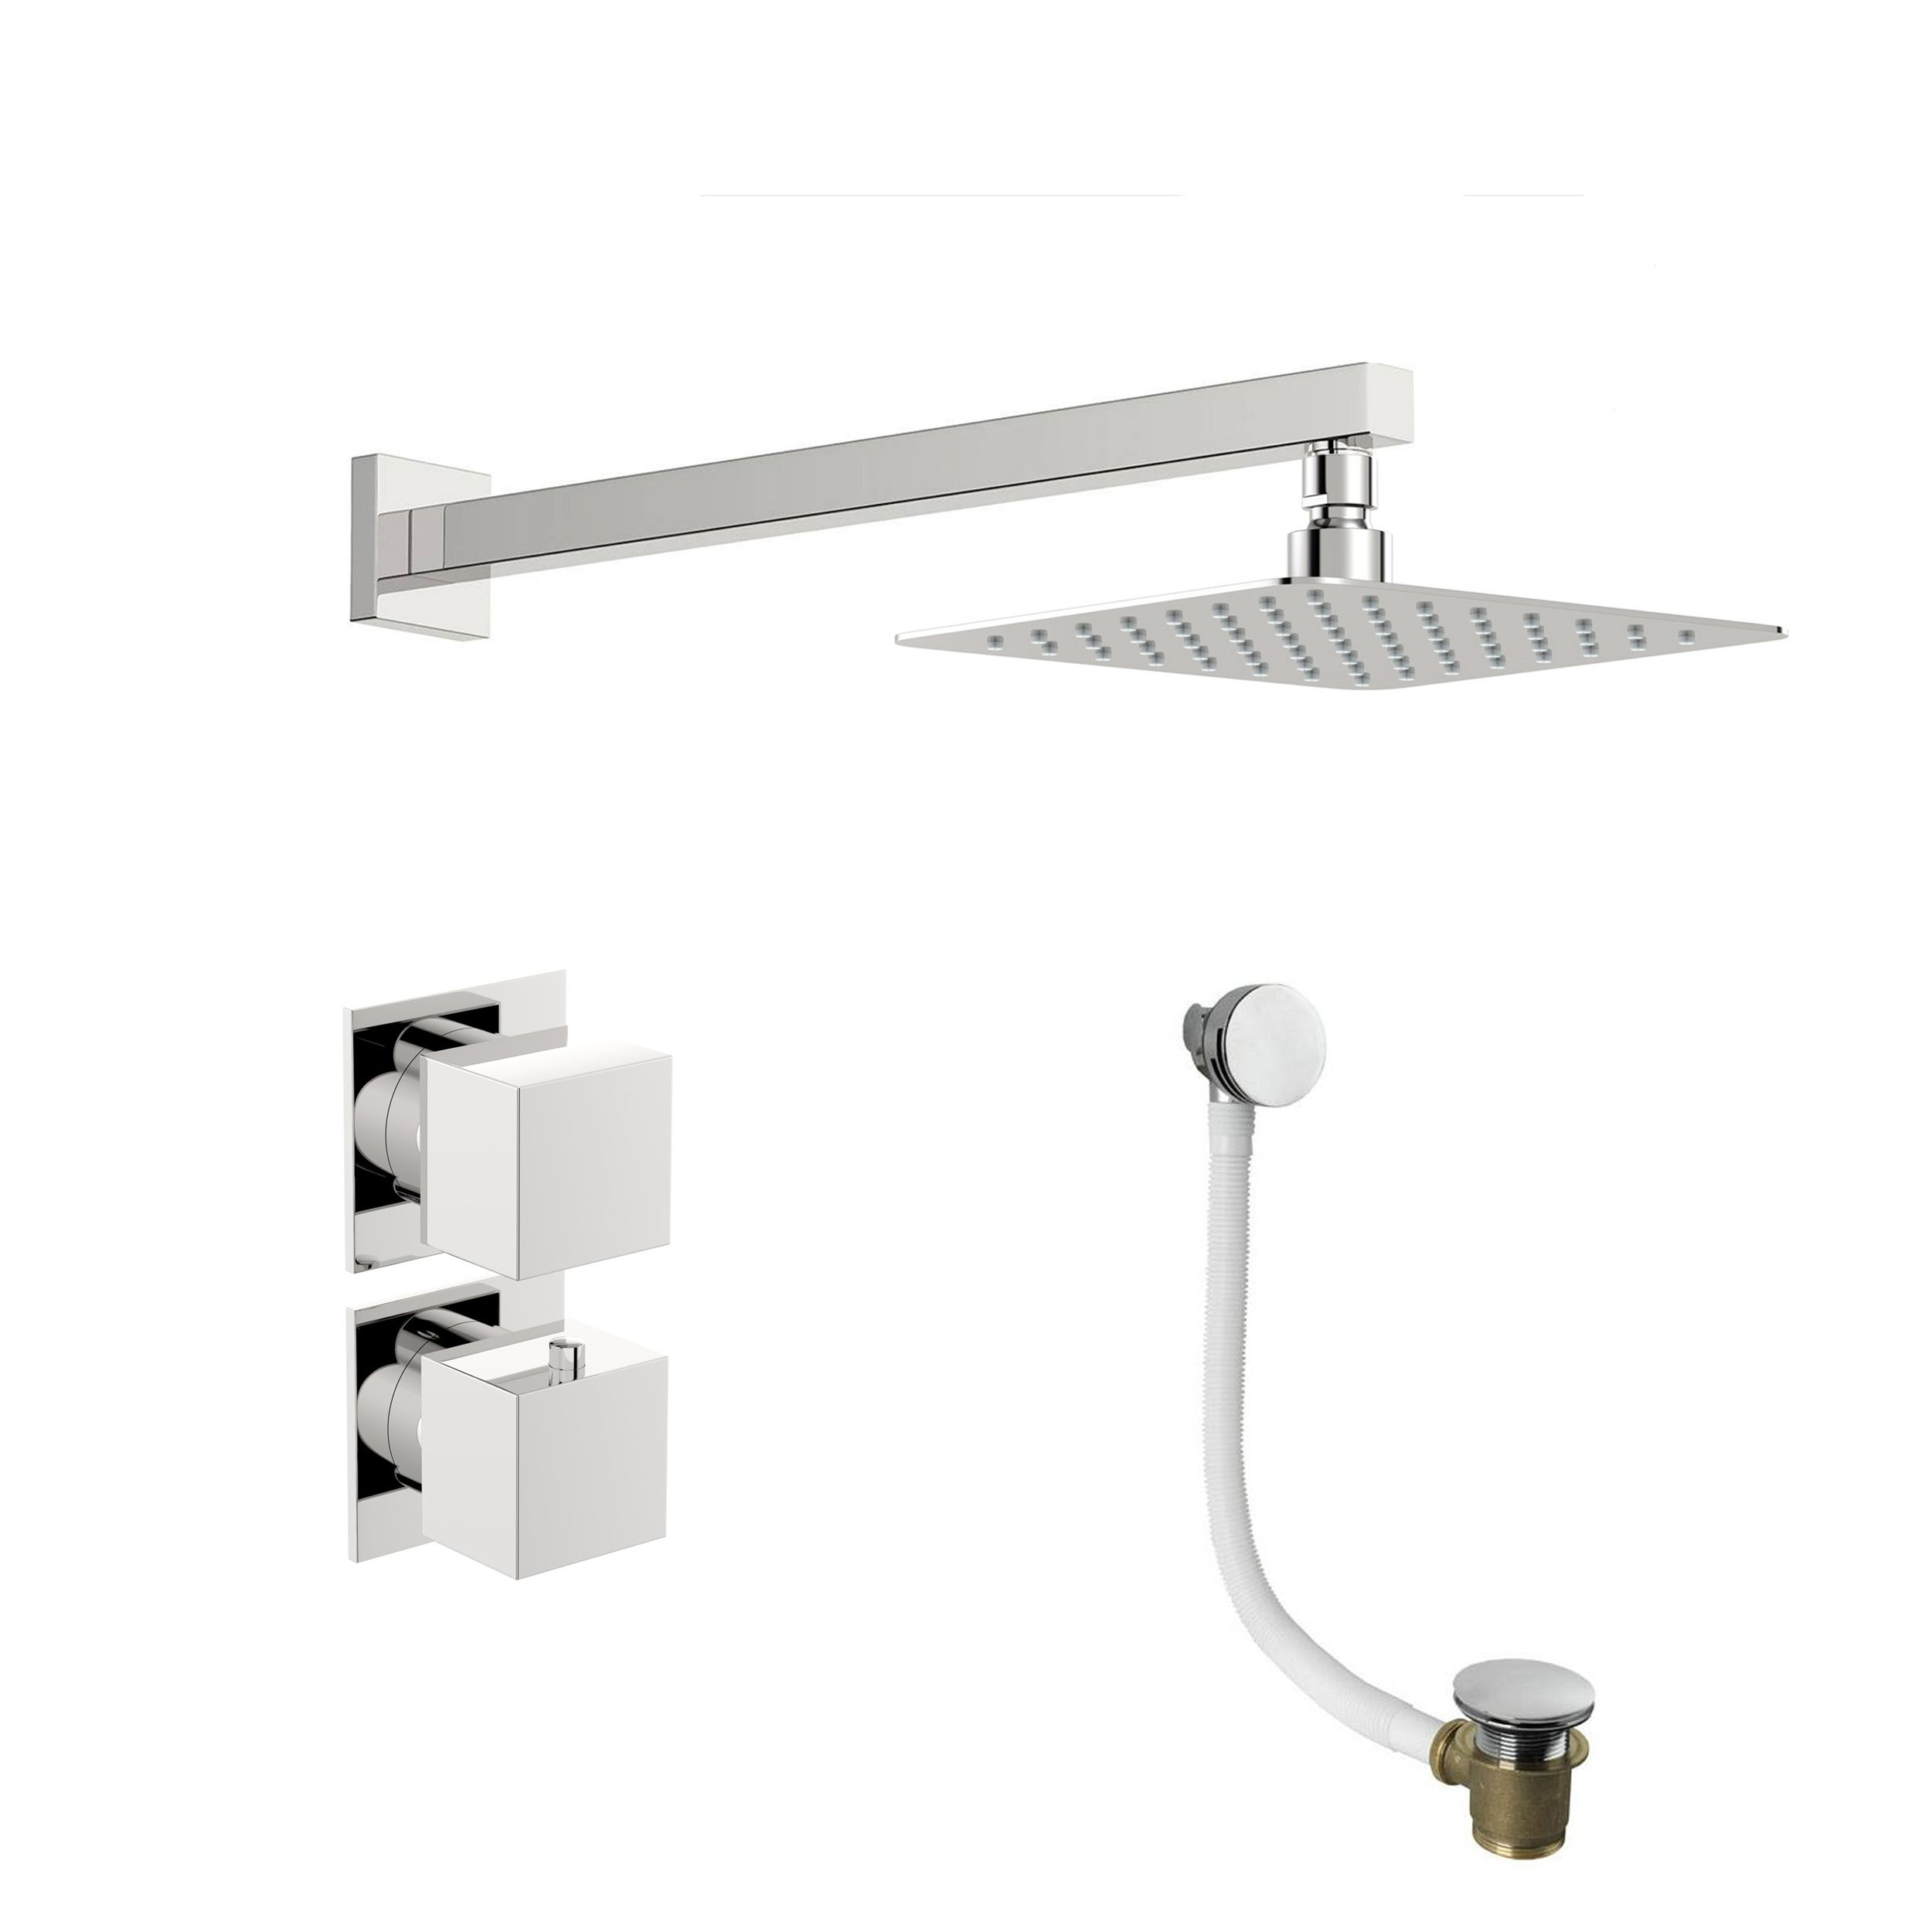 Mode Cooper thermostatic shower valve with wall shower bath set ...